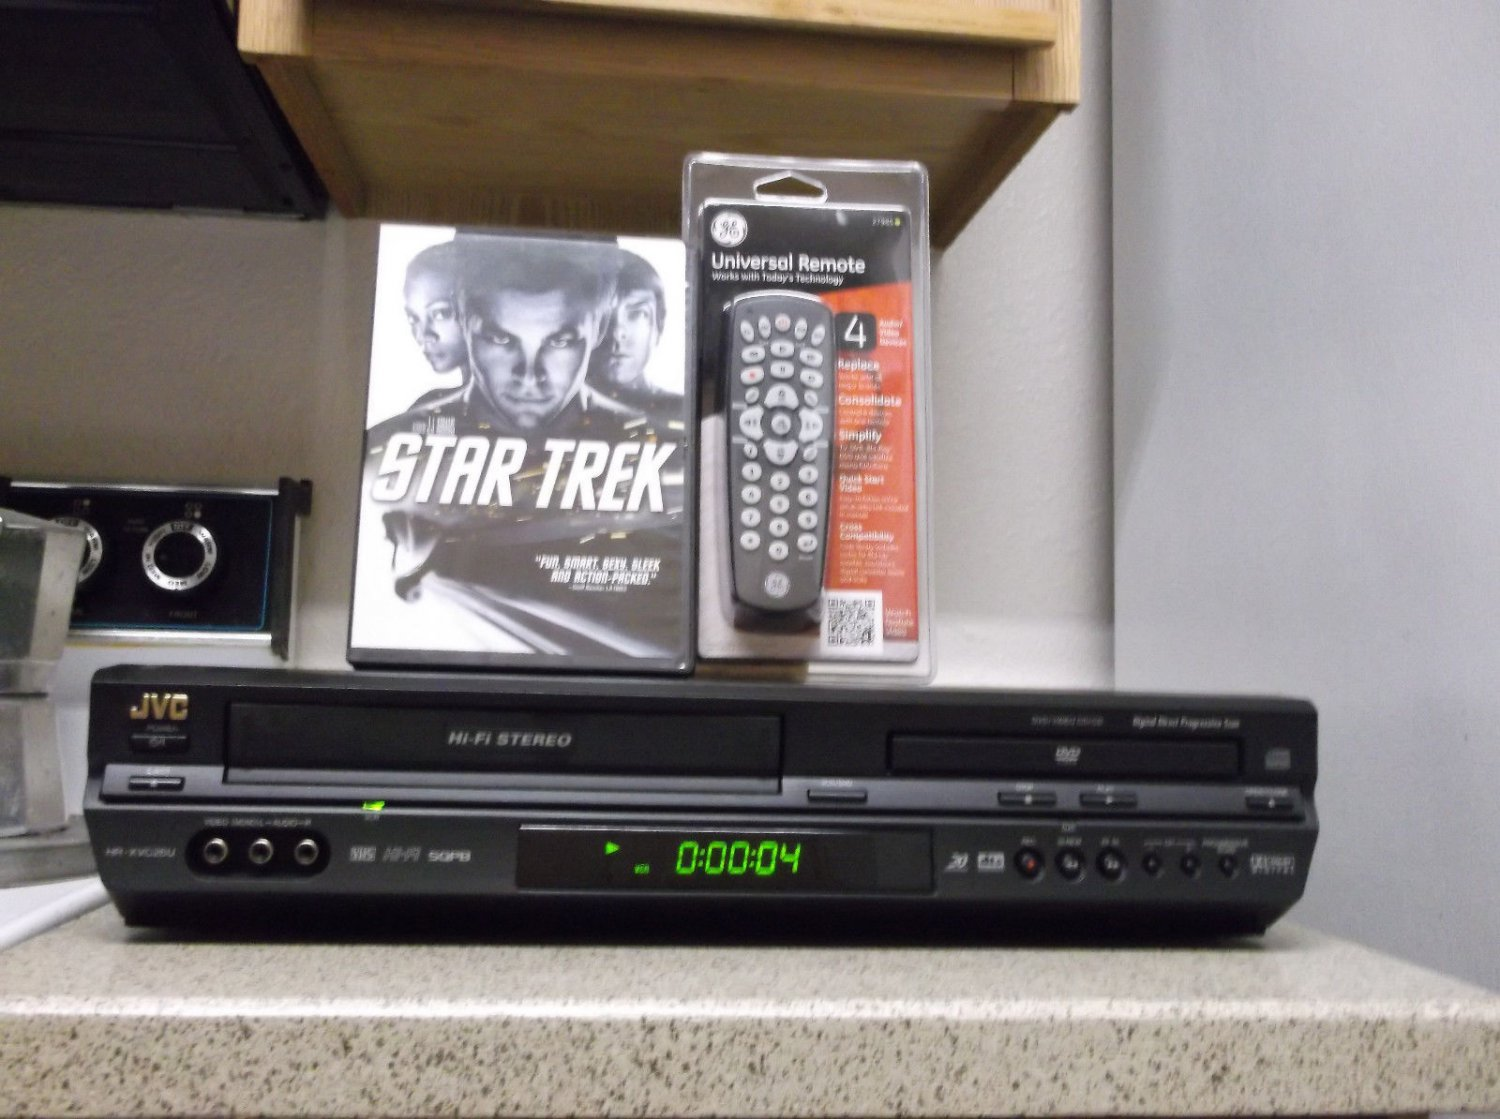 Refurbished  JVC HR-XVC26U VCR/DVD Combo HIFI Player W/ 4-1 Remote & 1 DVD Movie